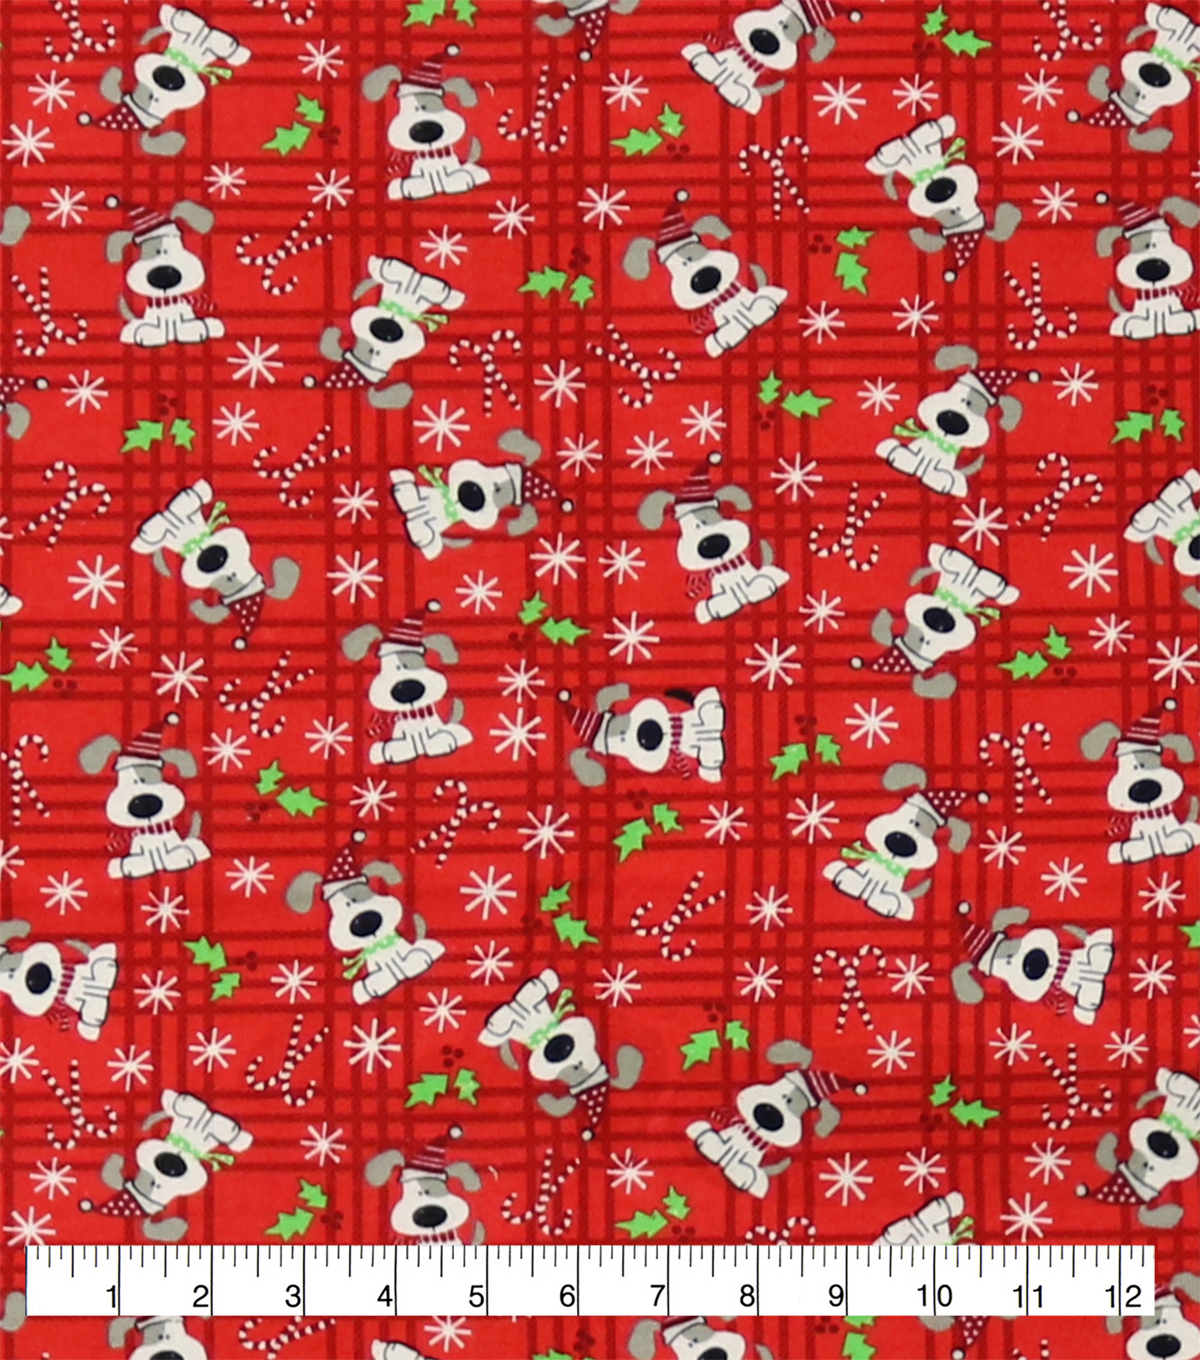 Super Snuggle Flannel Fabric-Spotted Holiday Pup Tossed